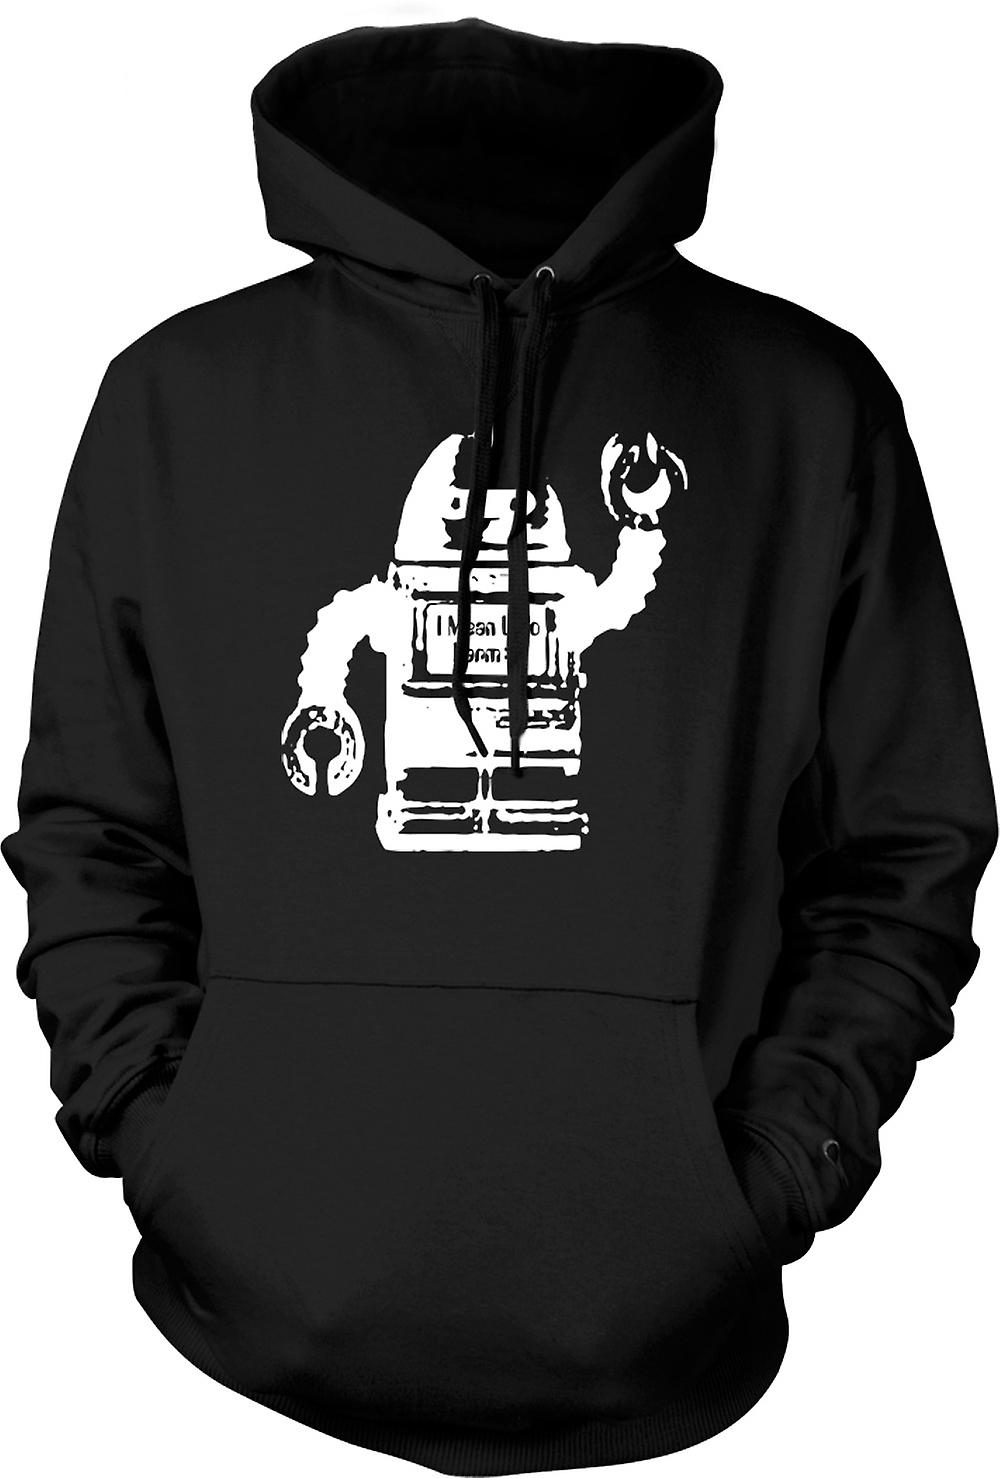 Mens Hoodie - Future Robot I Mean No Harm - Graphic Design